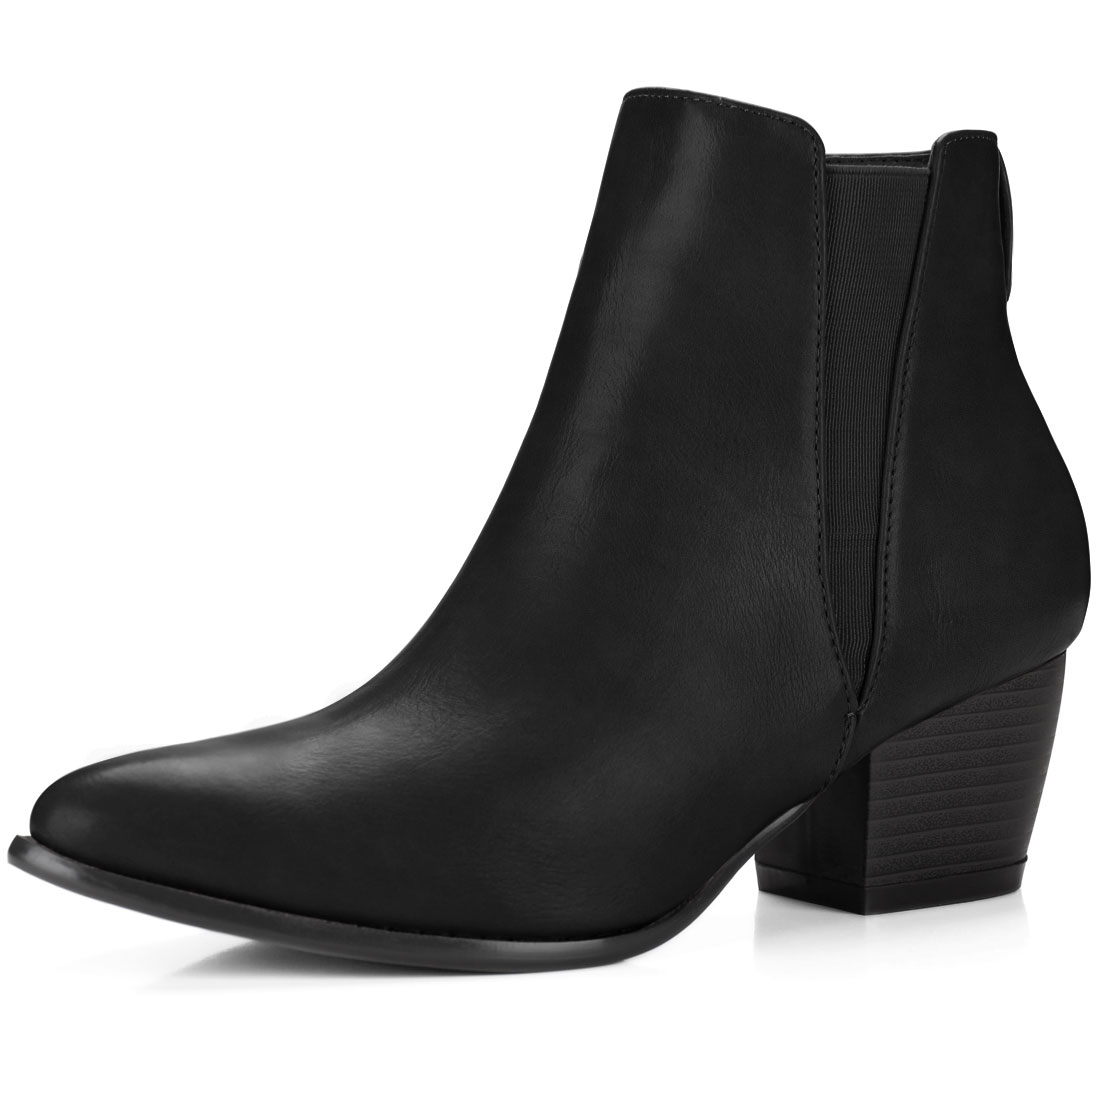 59bc787ca55a Unique Bargains Women s Pointed Toe Stacked Heel Ankle Chelsea Boots Black (Size  8.5) 0